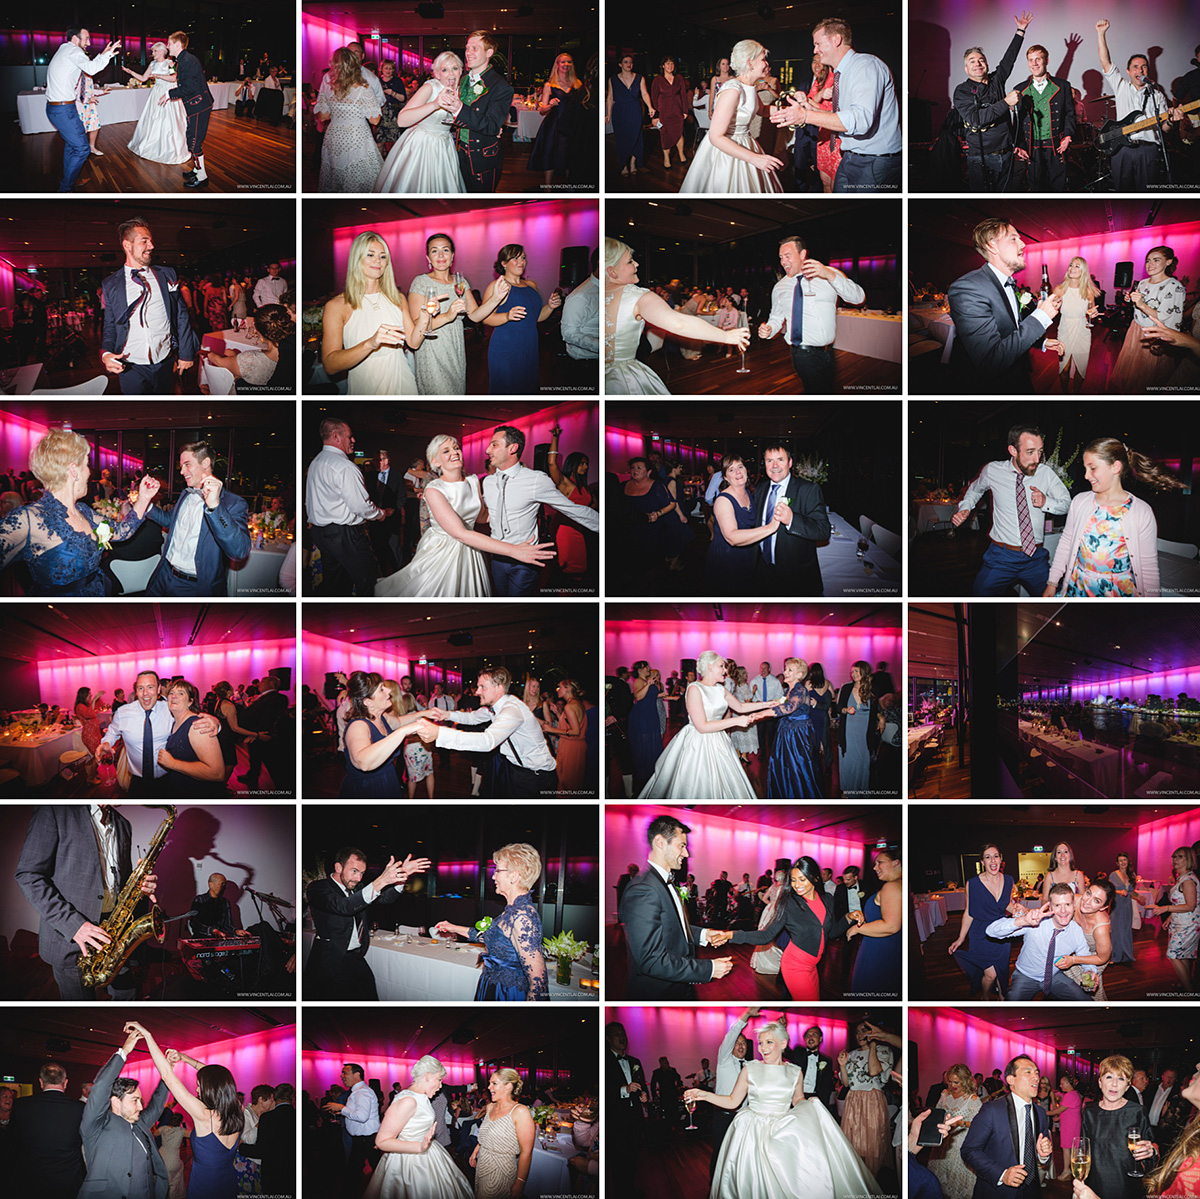 Sydney Wedding Dance Party